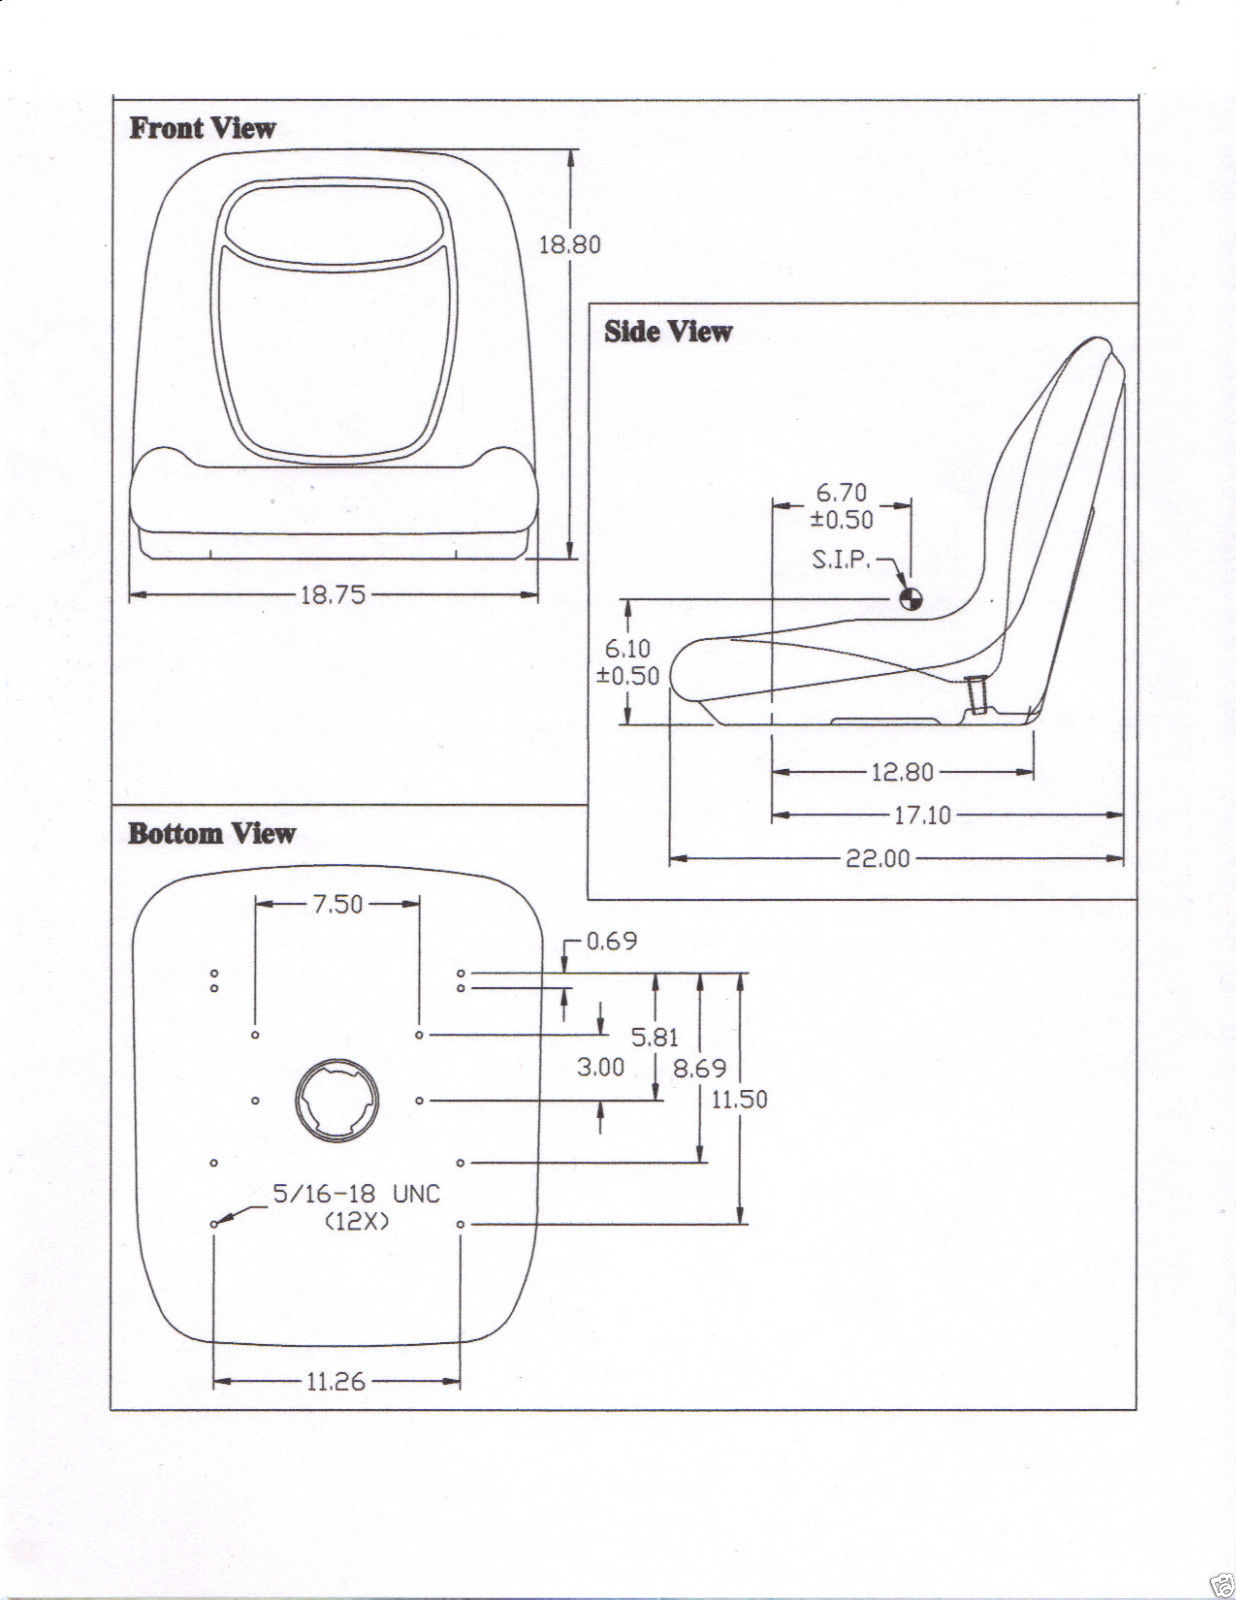 John Deere 4500 Wiring Diagram Electrical 450 Utility Tractor 4600 House Accessories